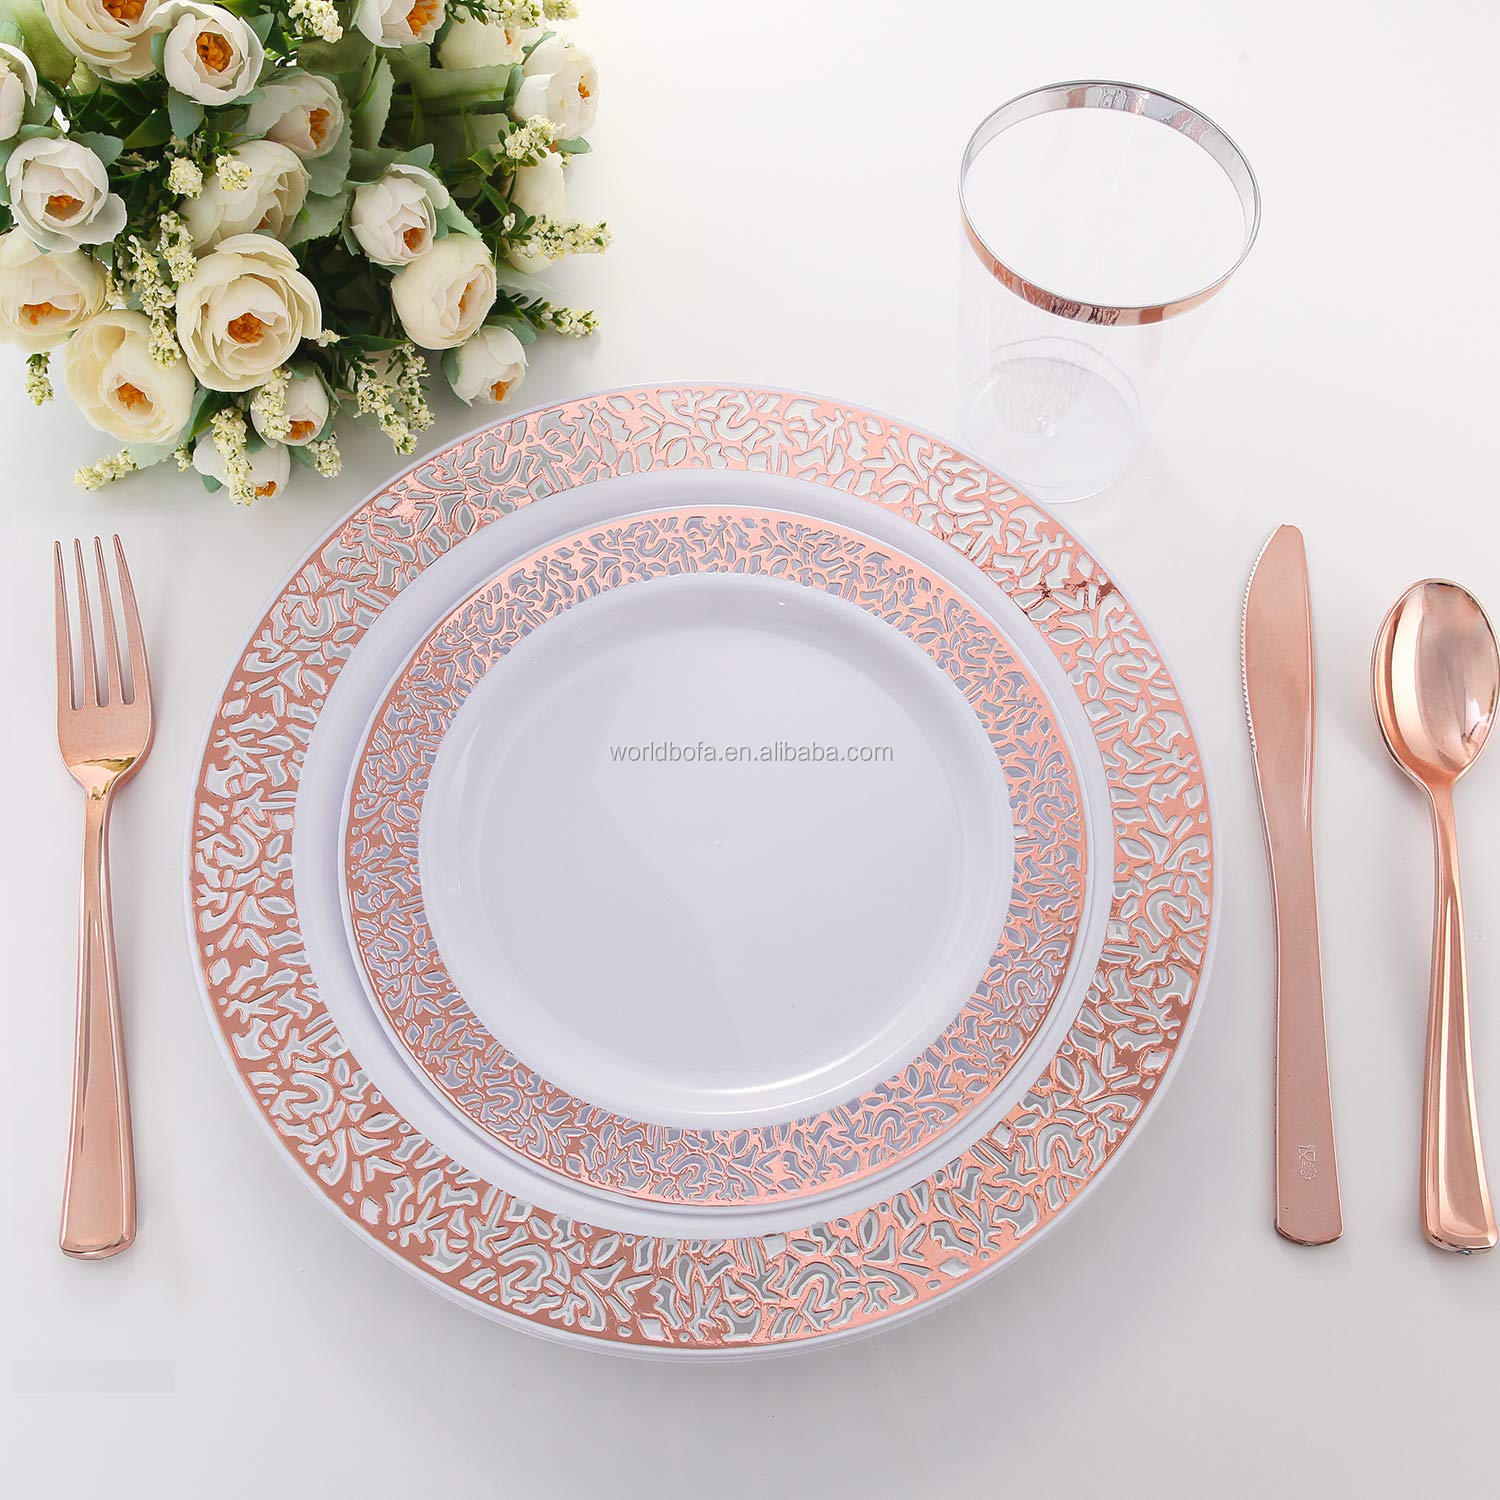 Rose Gold Charger Plates Plastic Lace Plates for Party